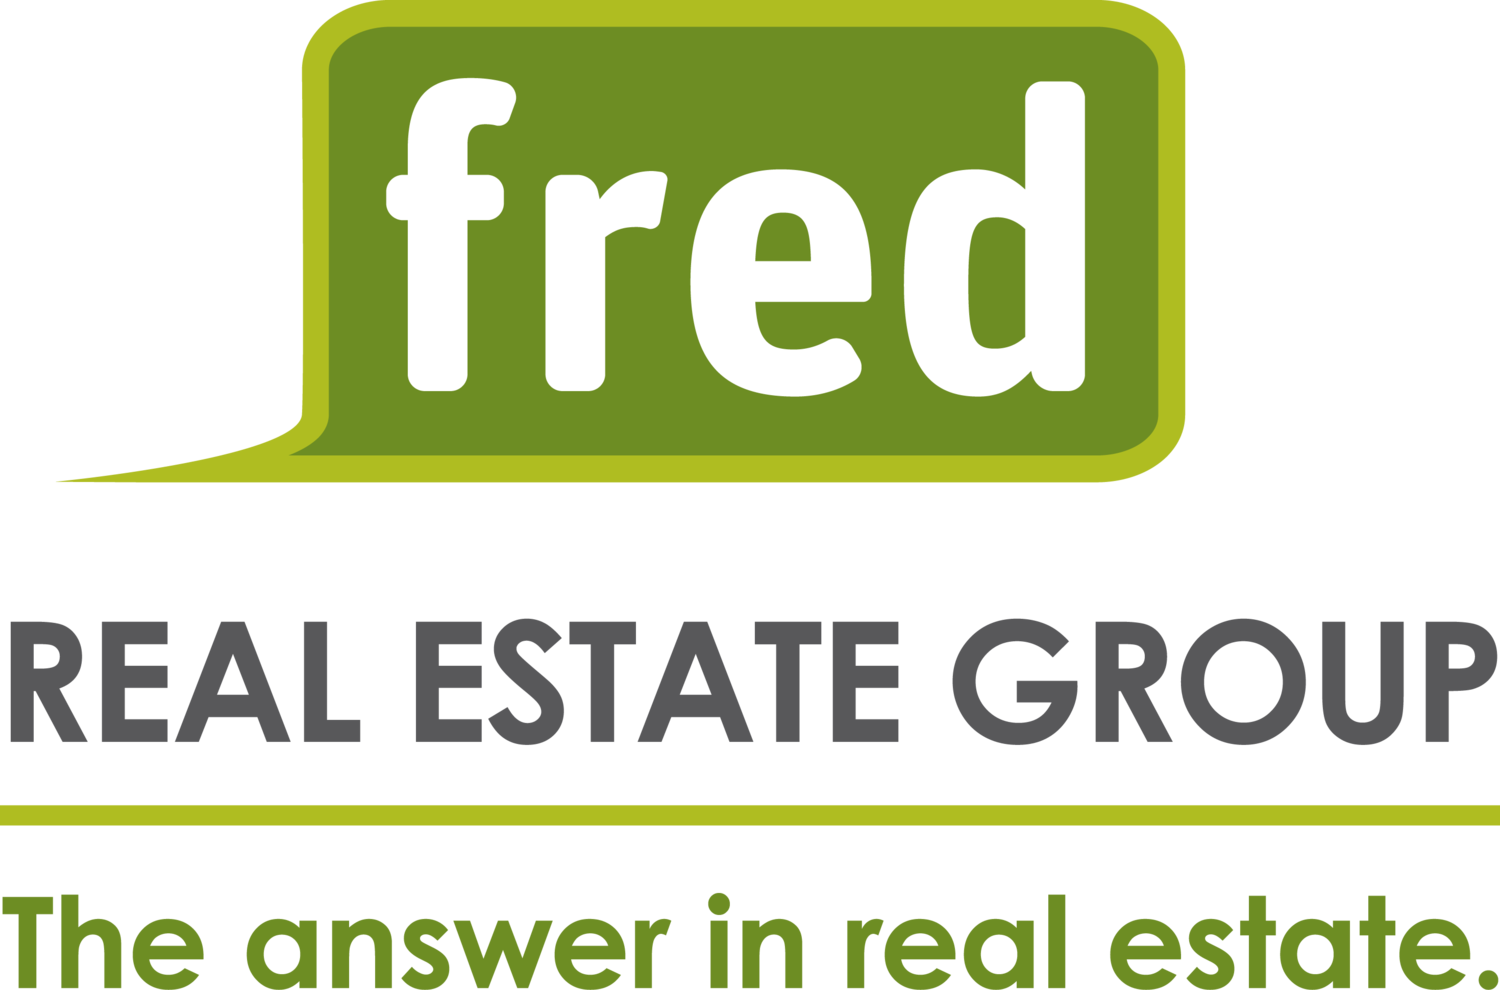 Client Feedback | Fred Real Estate Group